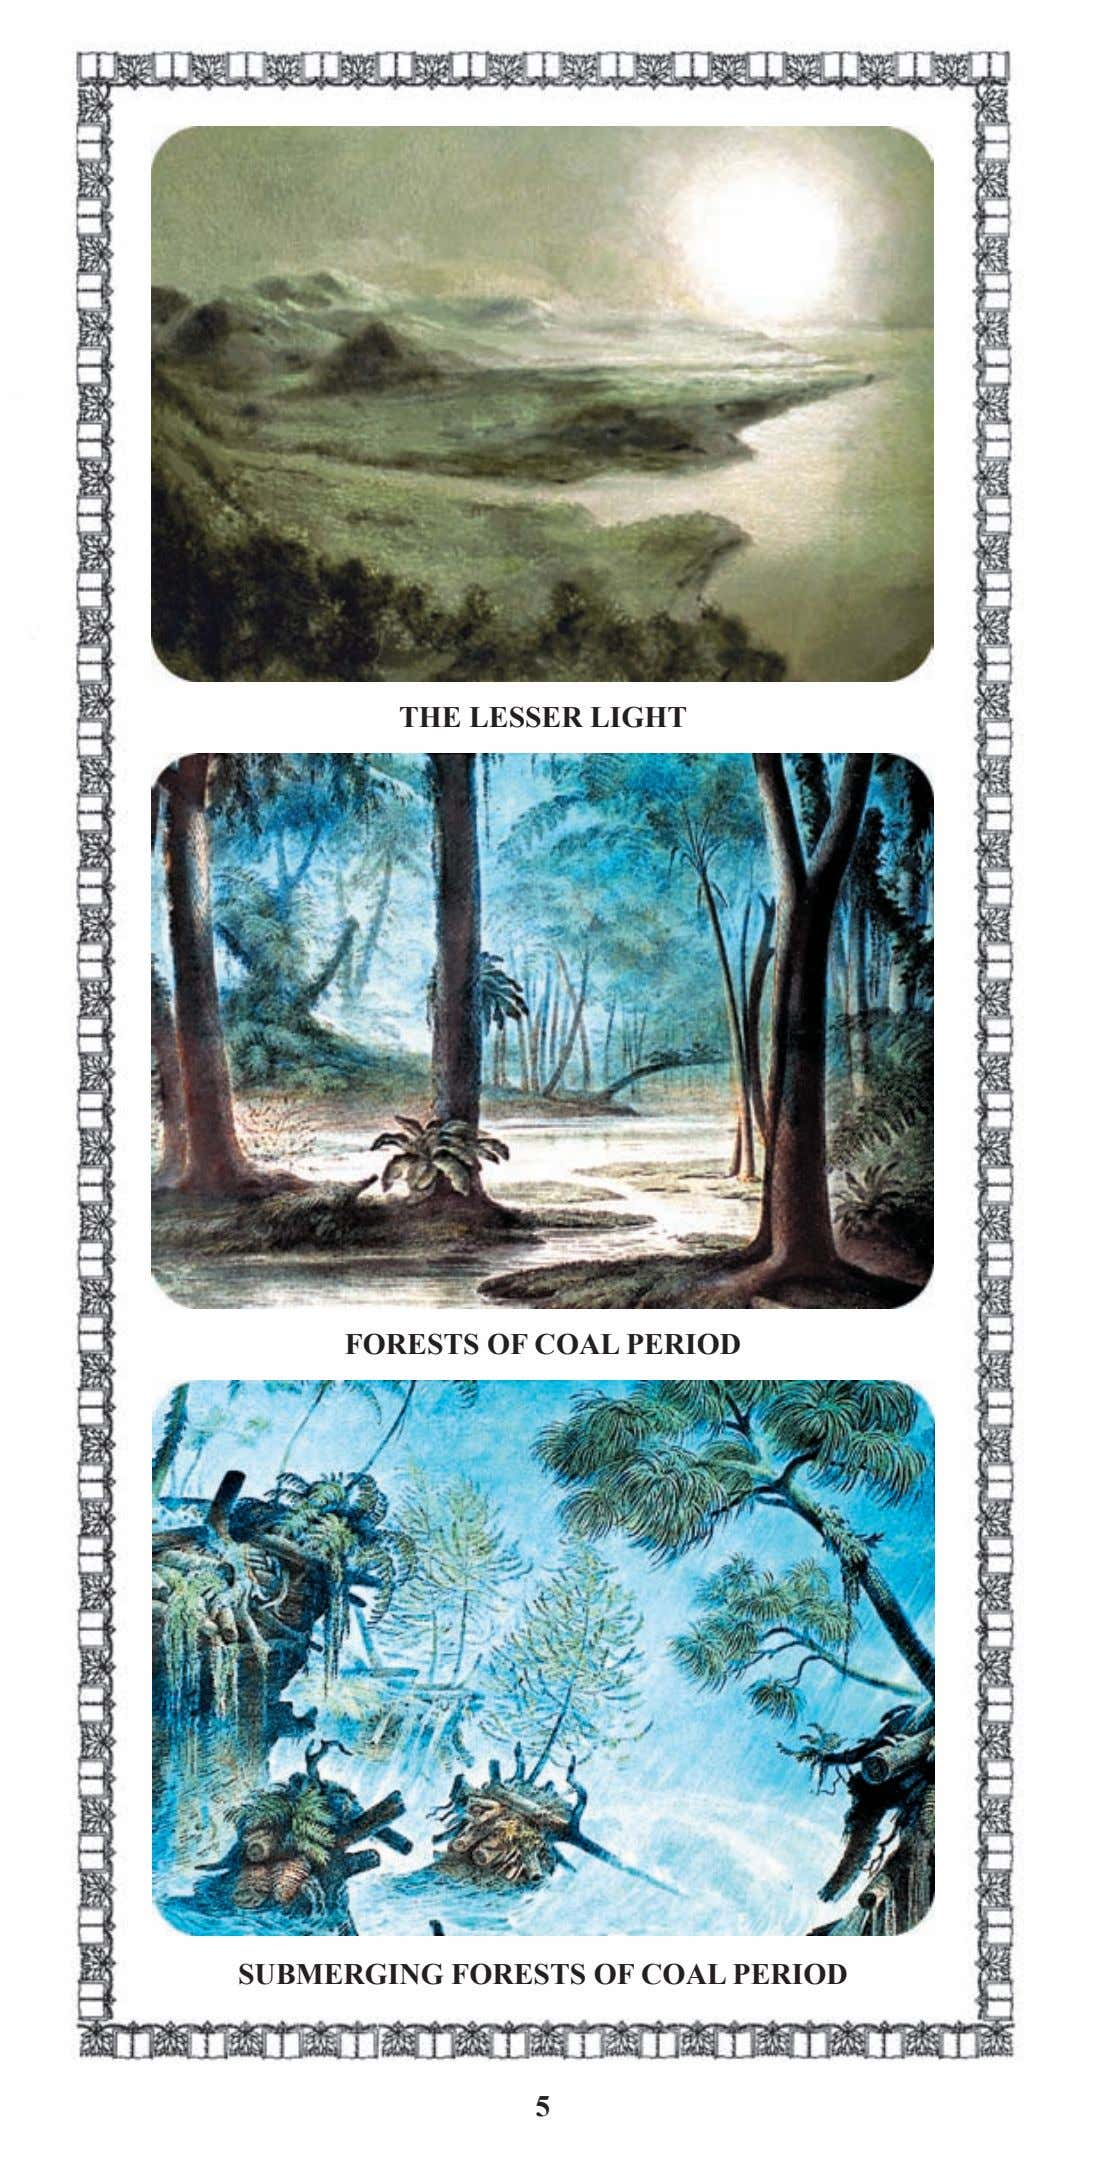 THE LESSER LIGHT FORESTS OF COAL PERIOD SUBMERGING FORESTS OF COAL PERIOD 5